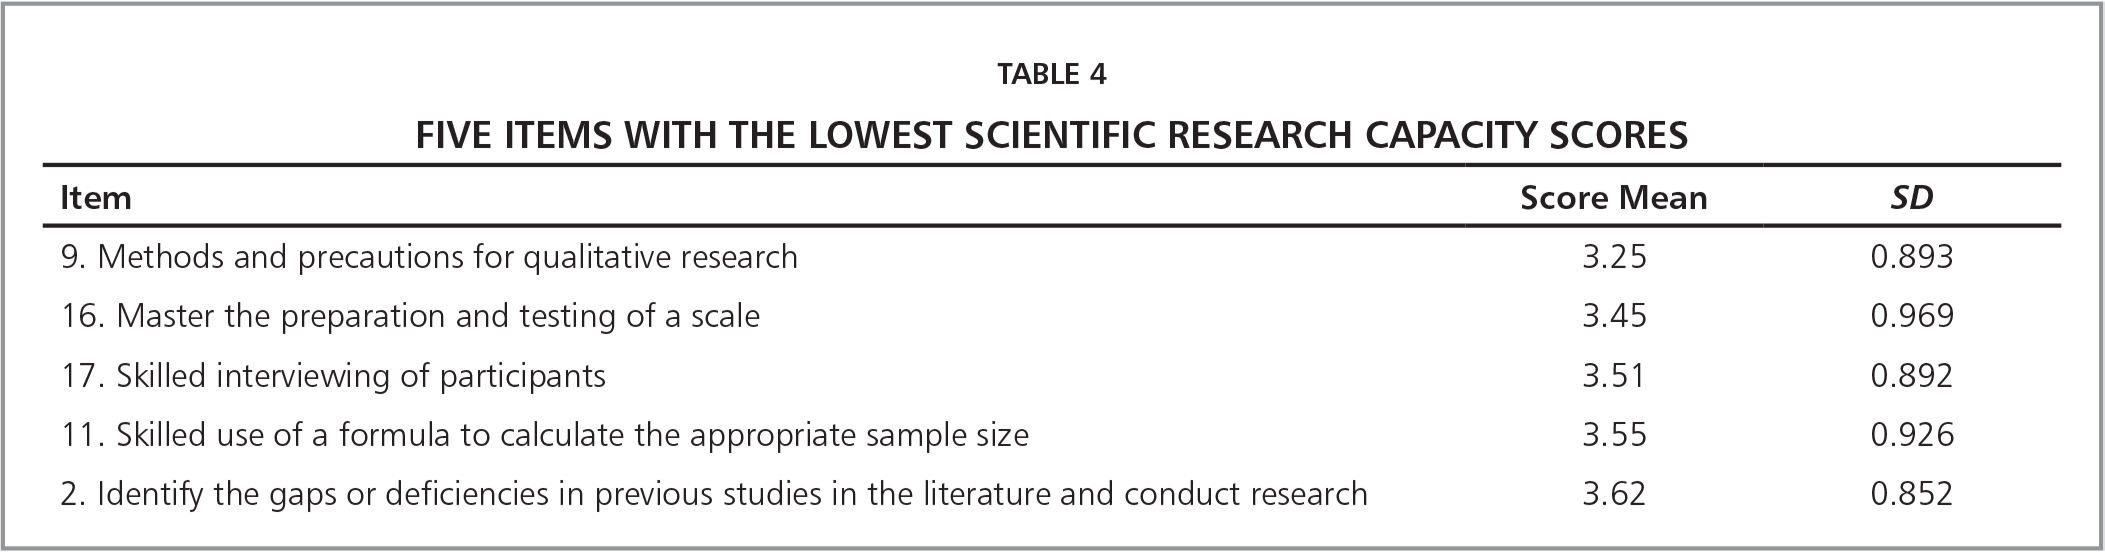 Five Items with the Lowest Scientific Research Capacity Scores